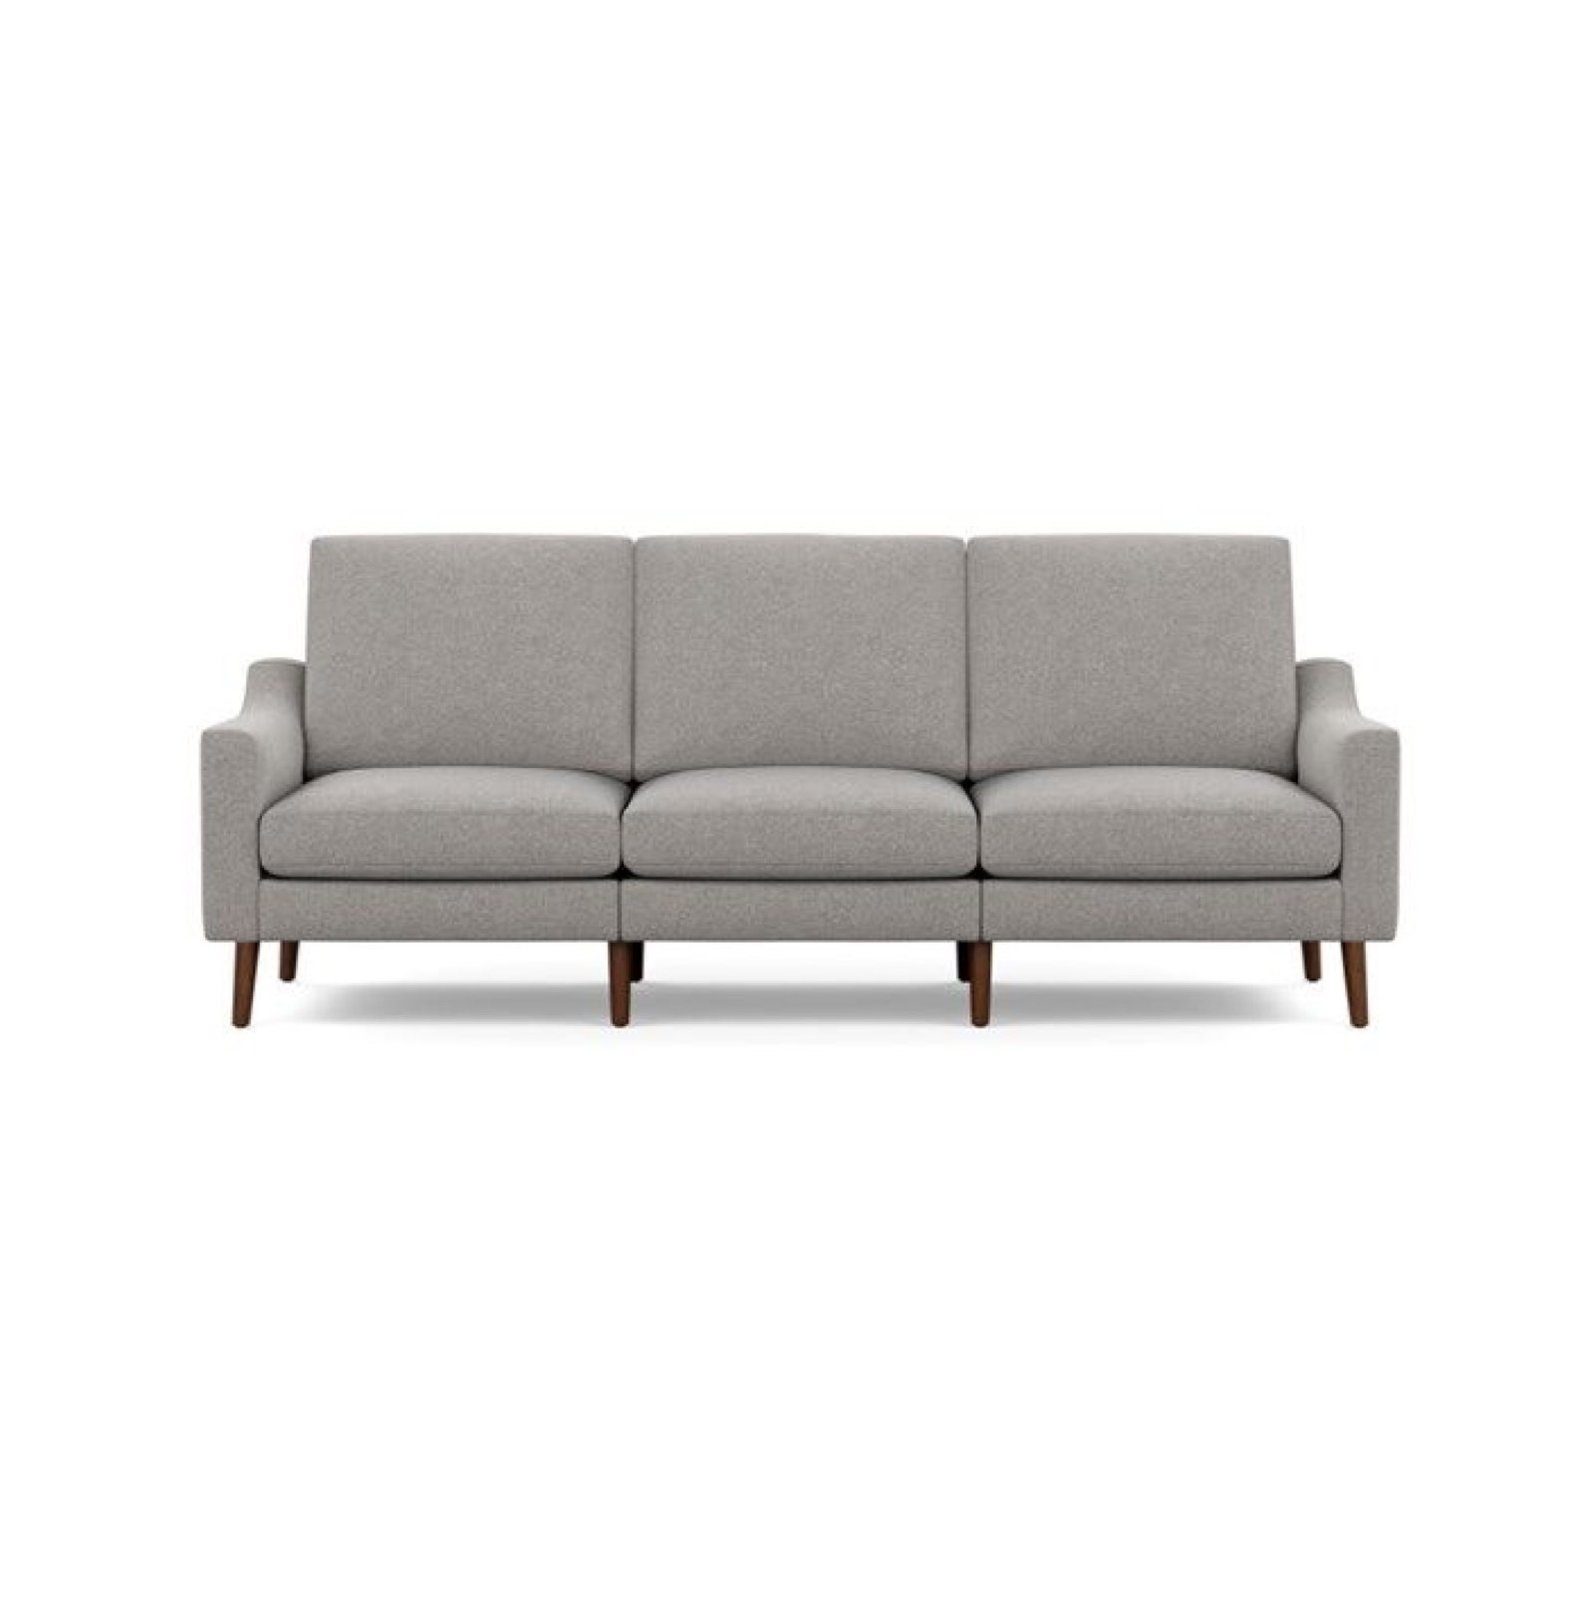 7 Best Places to Buy an Affordable, Stylish Sofa